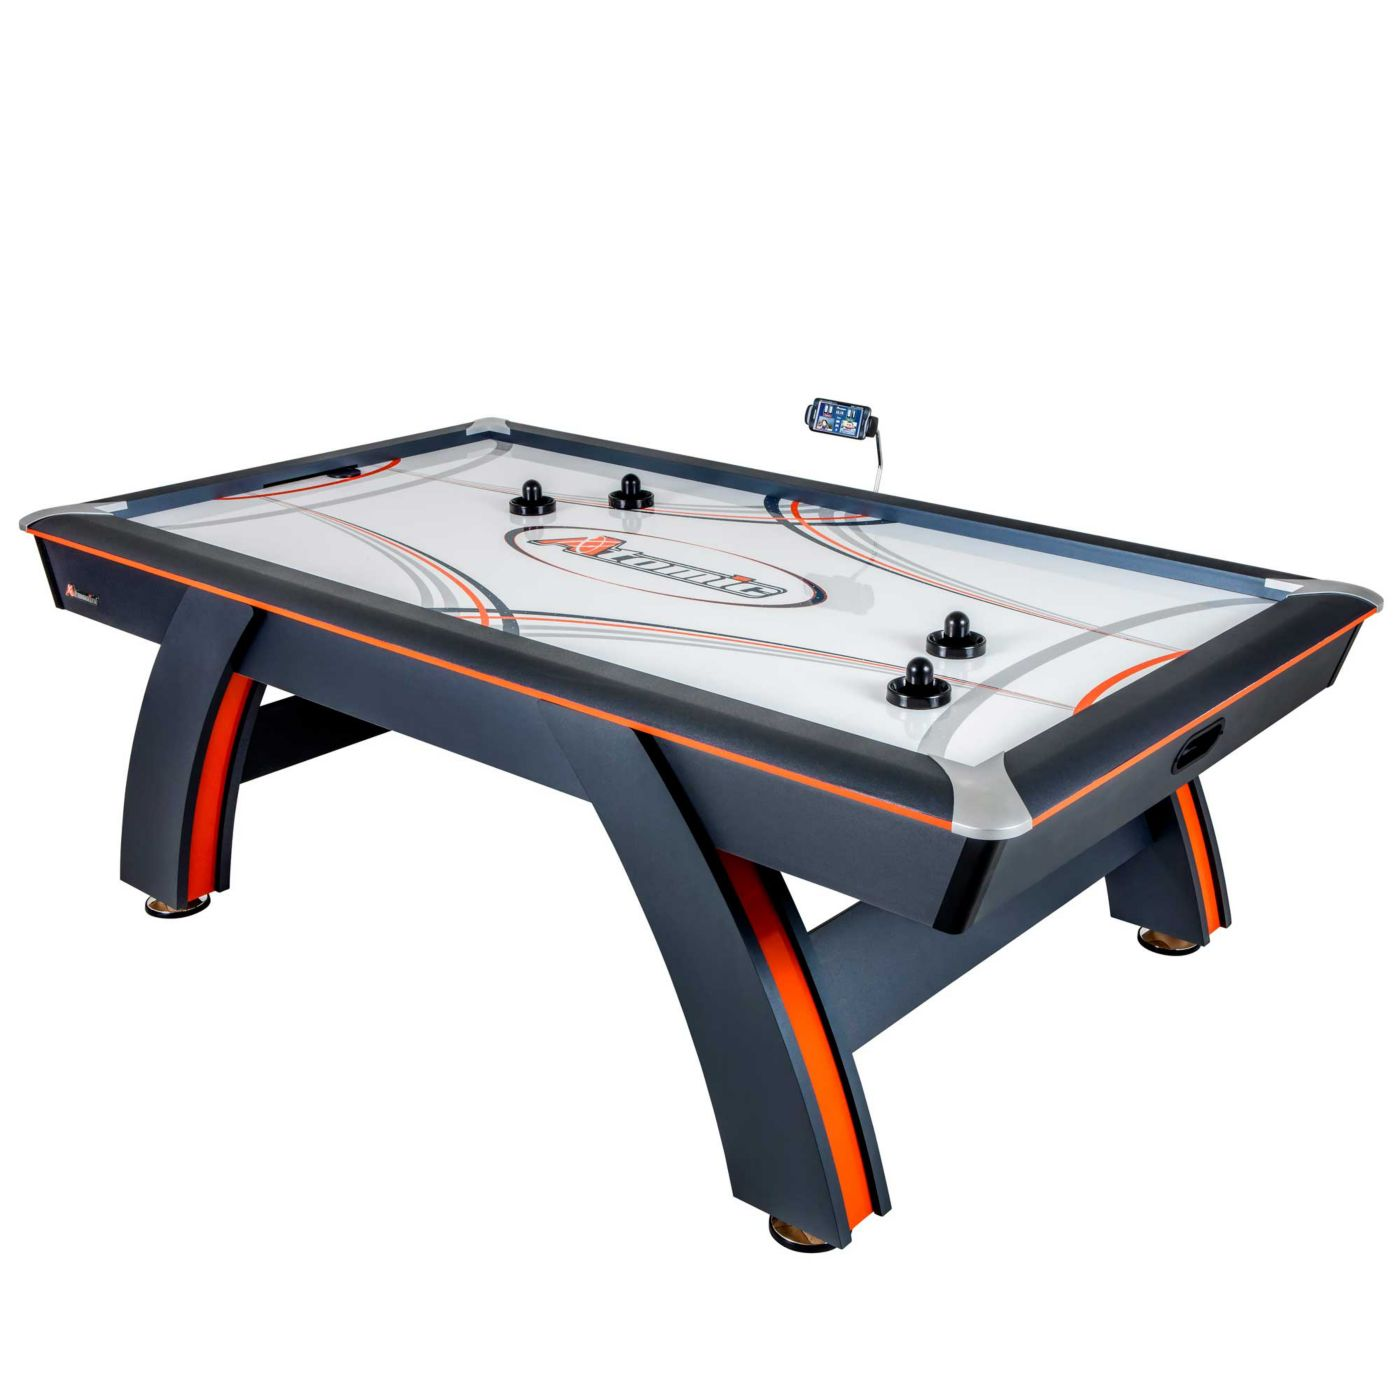 Atomic 7.5' Contour Air Hockey Table with ScoreLinx